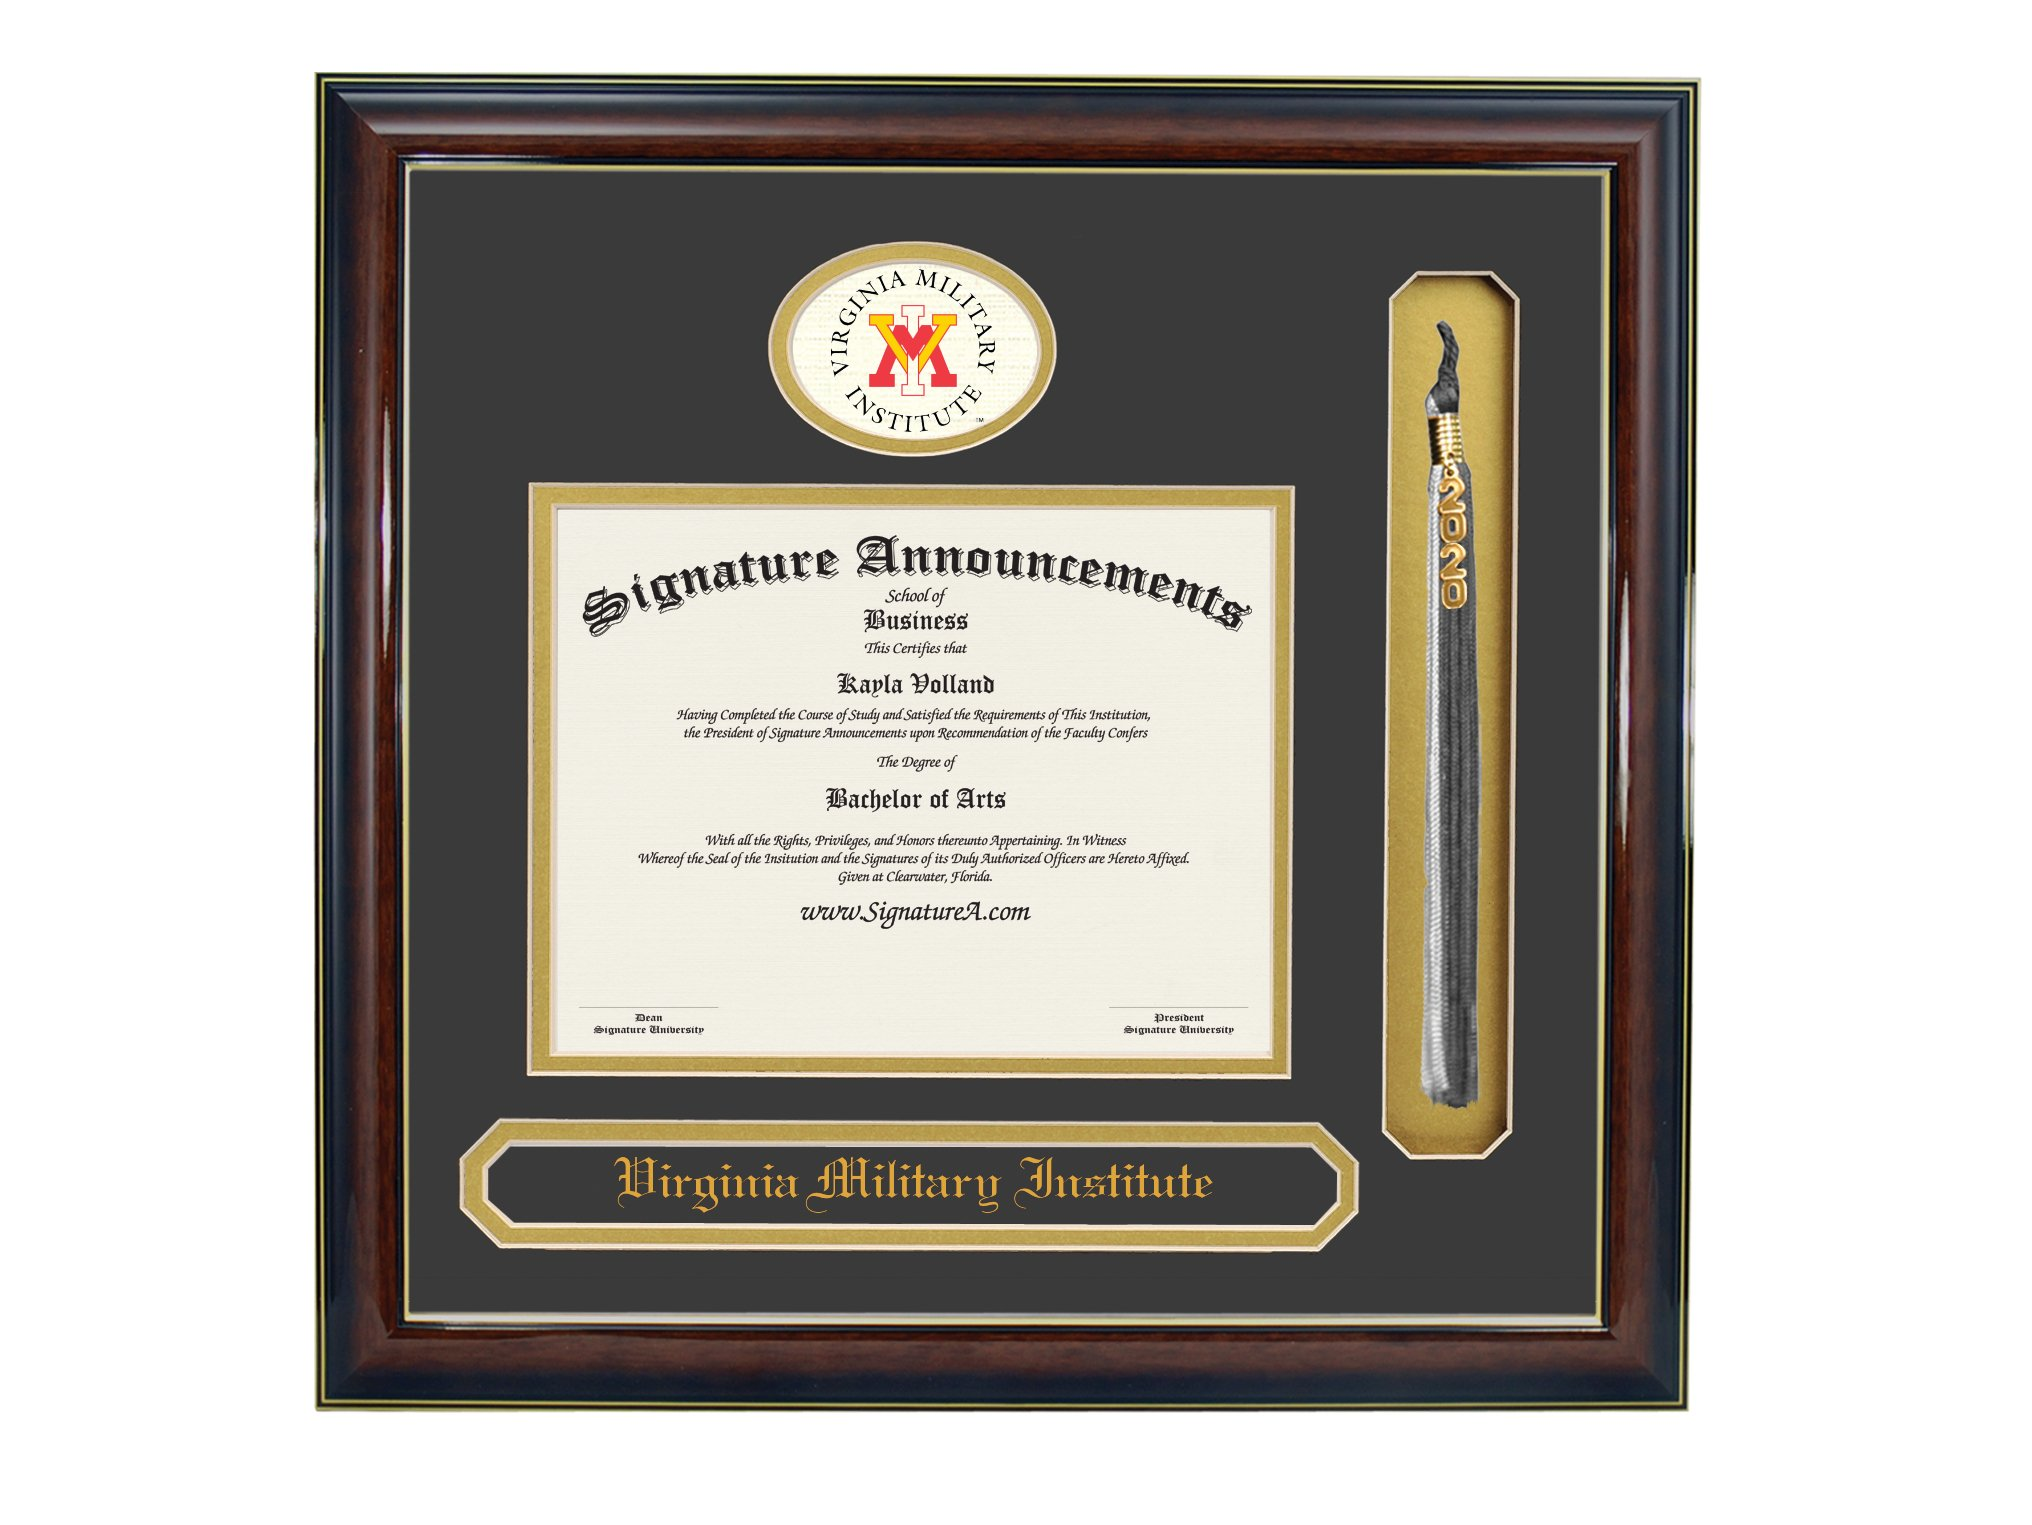 Signature Announcements Virginia-Military-Institute Undergraduate, Doctorate Sculpted Foil Seal, Name & Tassel Graduation Diploma Frame, 22'' x 30'', Gold Accent Gloss Mahogany by Signature Announcements